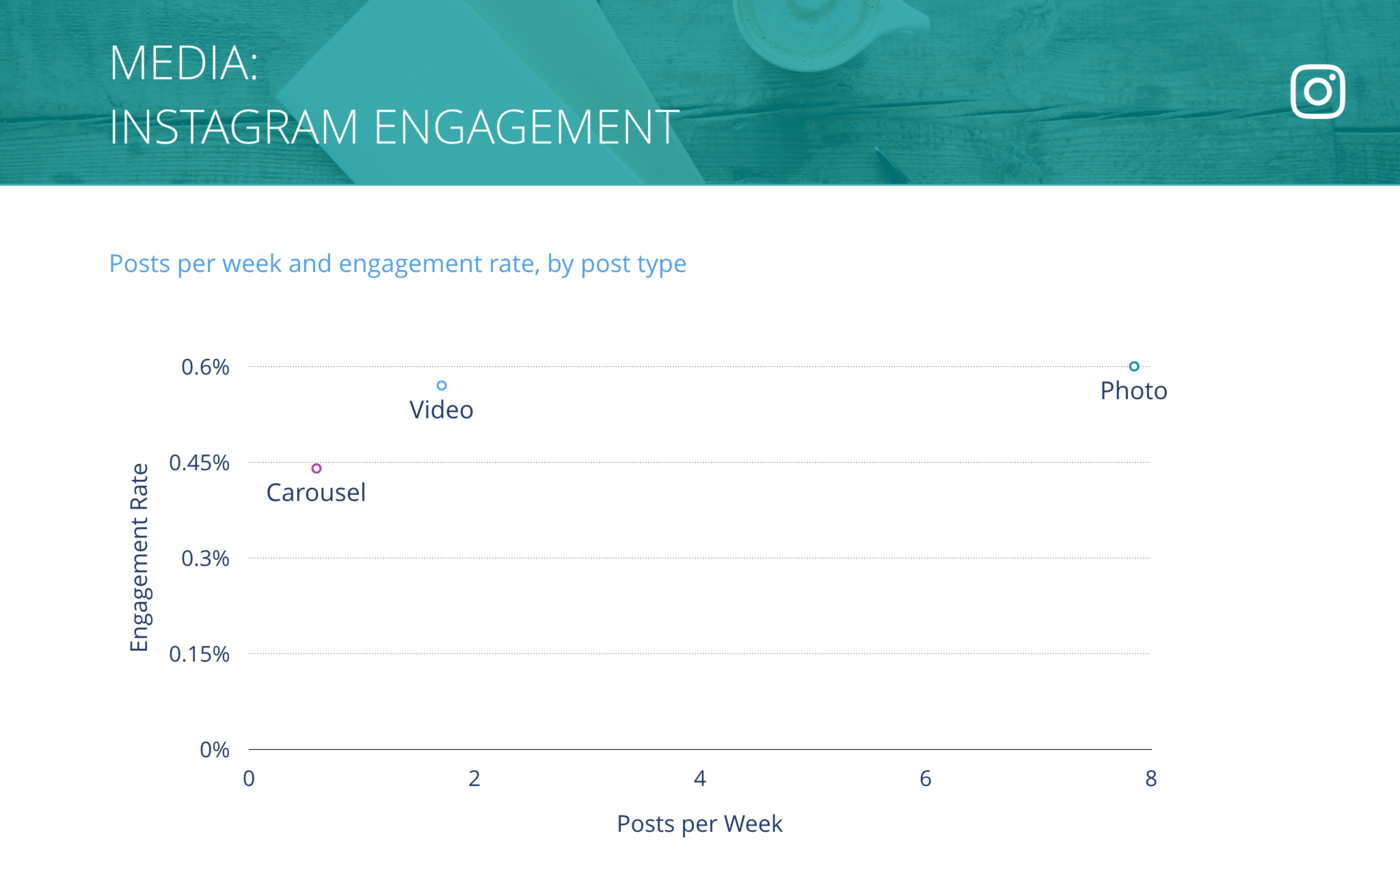 slide for Instagram Posts per Week vs. Engagement Rate per Post, Media Companies